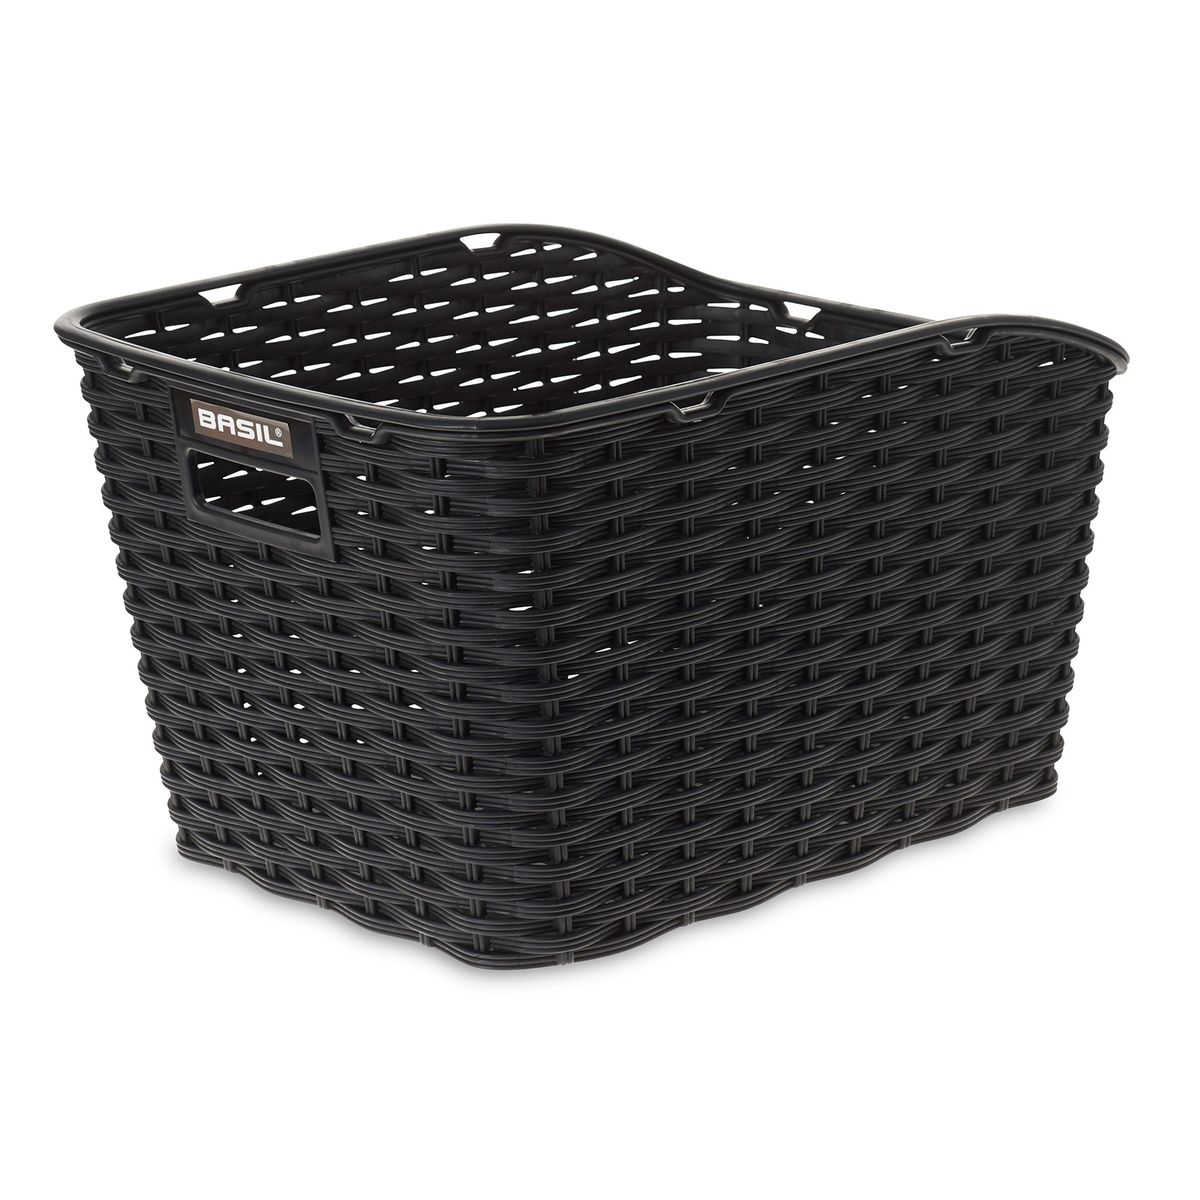 WEAVE WP rear bicycle basket